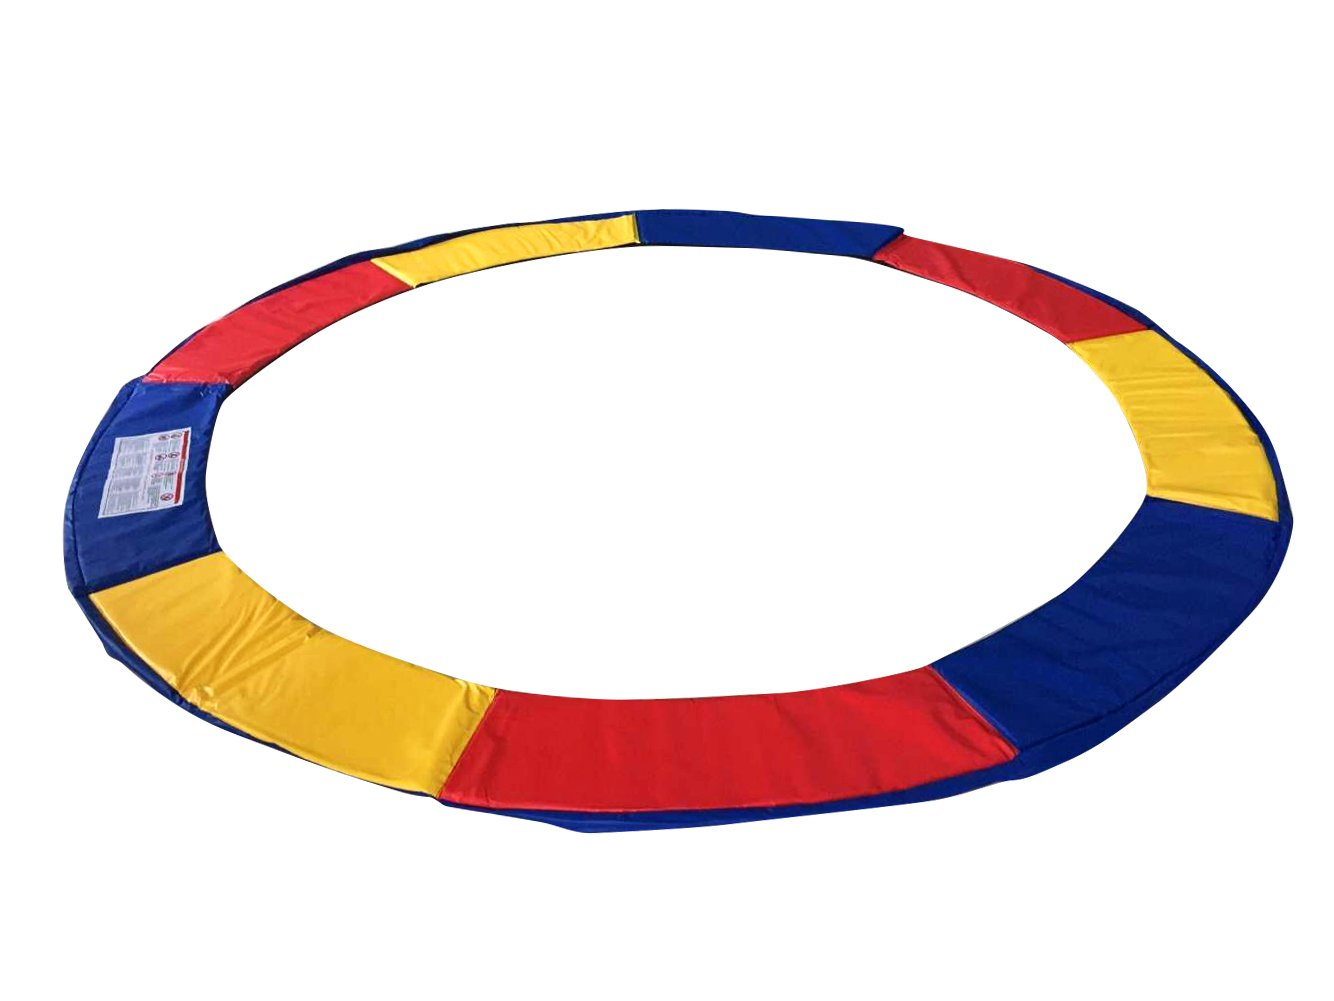 Exacme Trampoline Replacement Safety Pad Frame Spring 10-16FT Colors Round Cover (10 FT) by Exacme (Image #1)